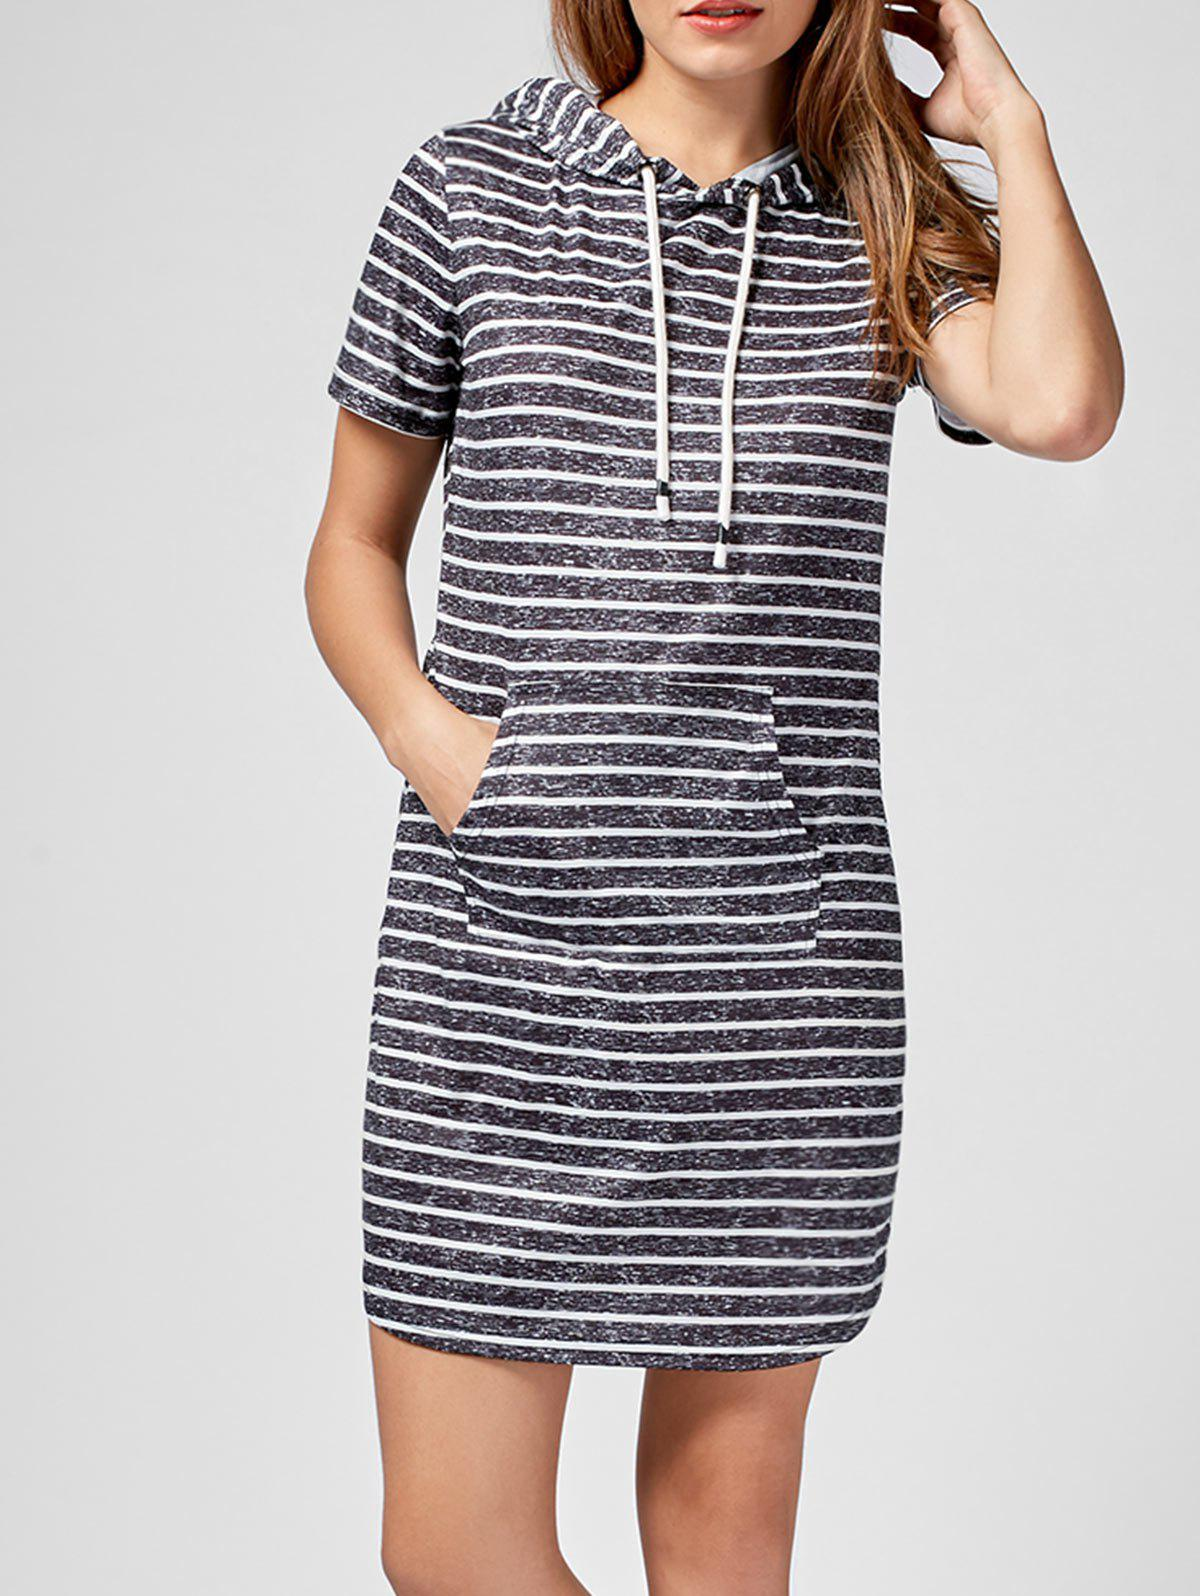 Hooded Striped Kangaroo Pocket Mini Dress - BLACK STRIPE 2XL